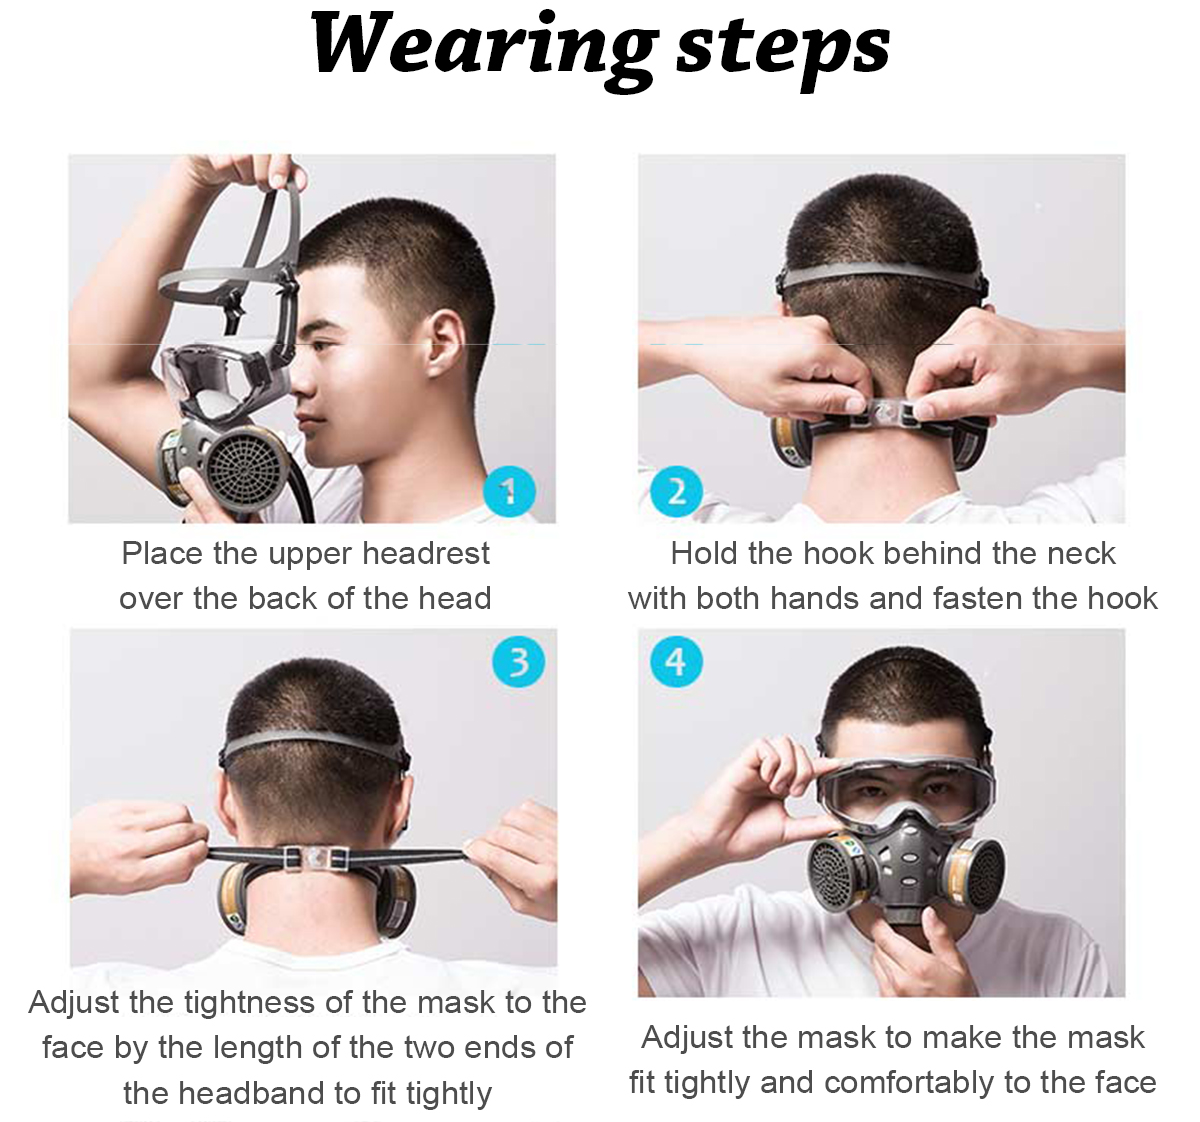 Eye Protector and Respiratory Face Mask 2-in-1 protection for your face polishing, construction, mining, factory, lab, house fitment, daily haze Respirator protect Protectors protector protective protecting protect painting mask's Mask KN95 INDUSTRIAL Goggles filter face eyewear eye mask dustproof dust proof Breathing breathe